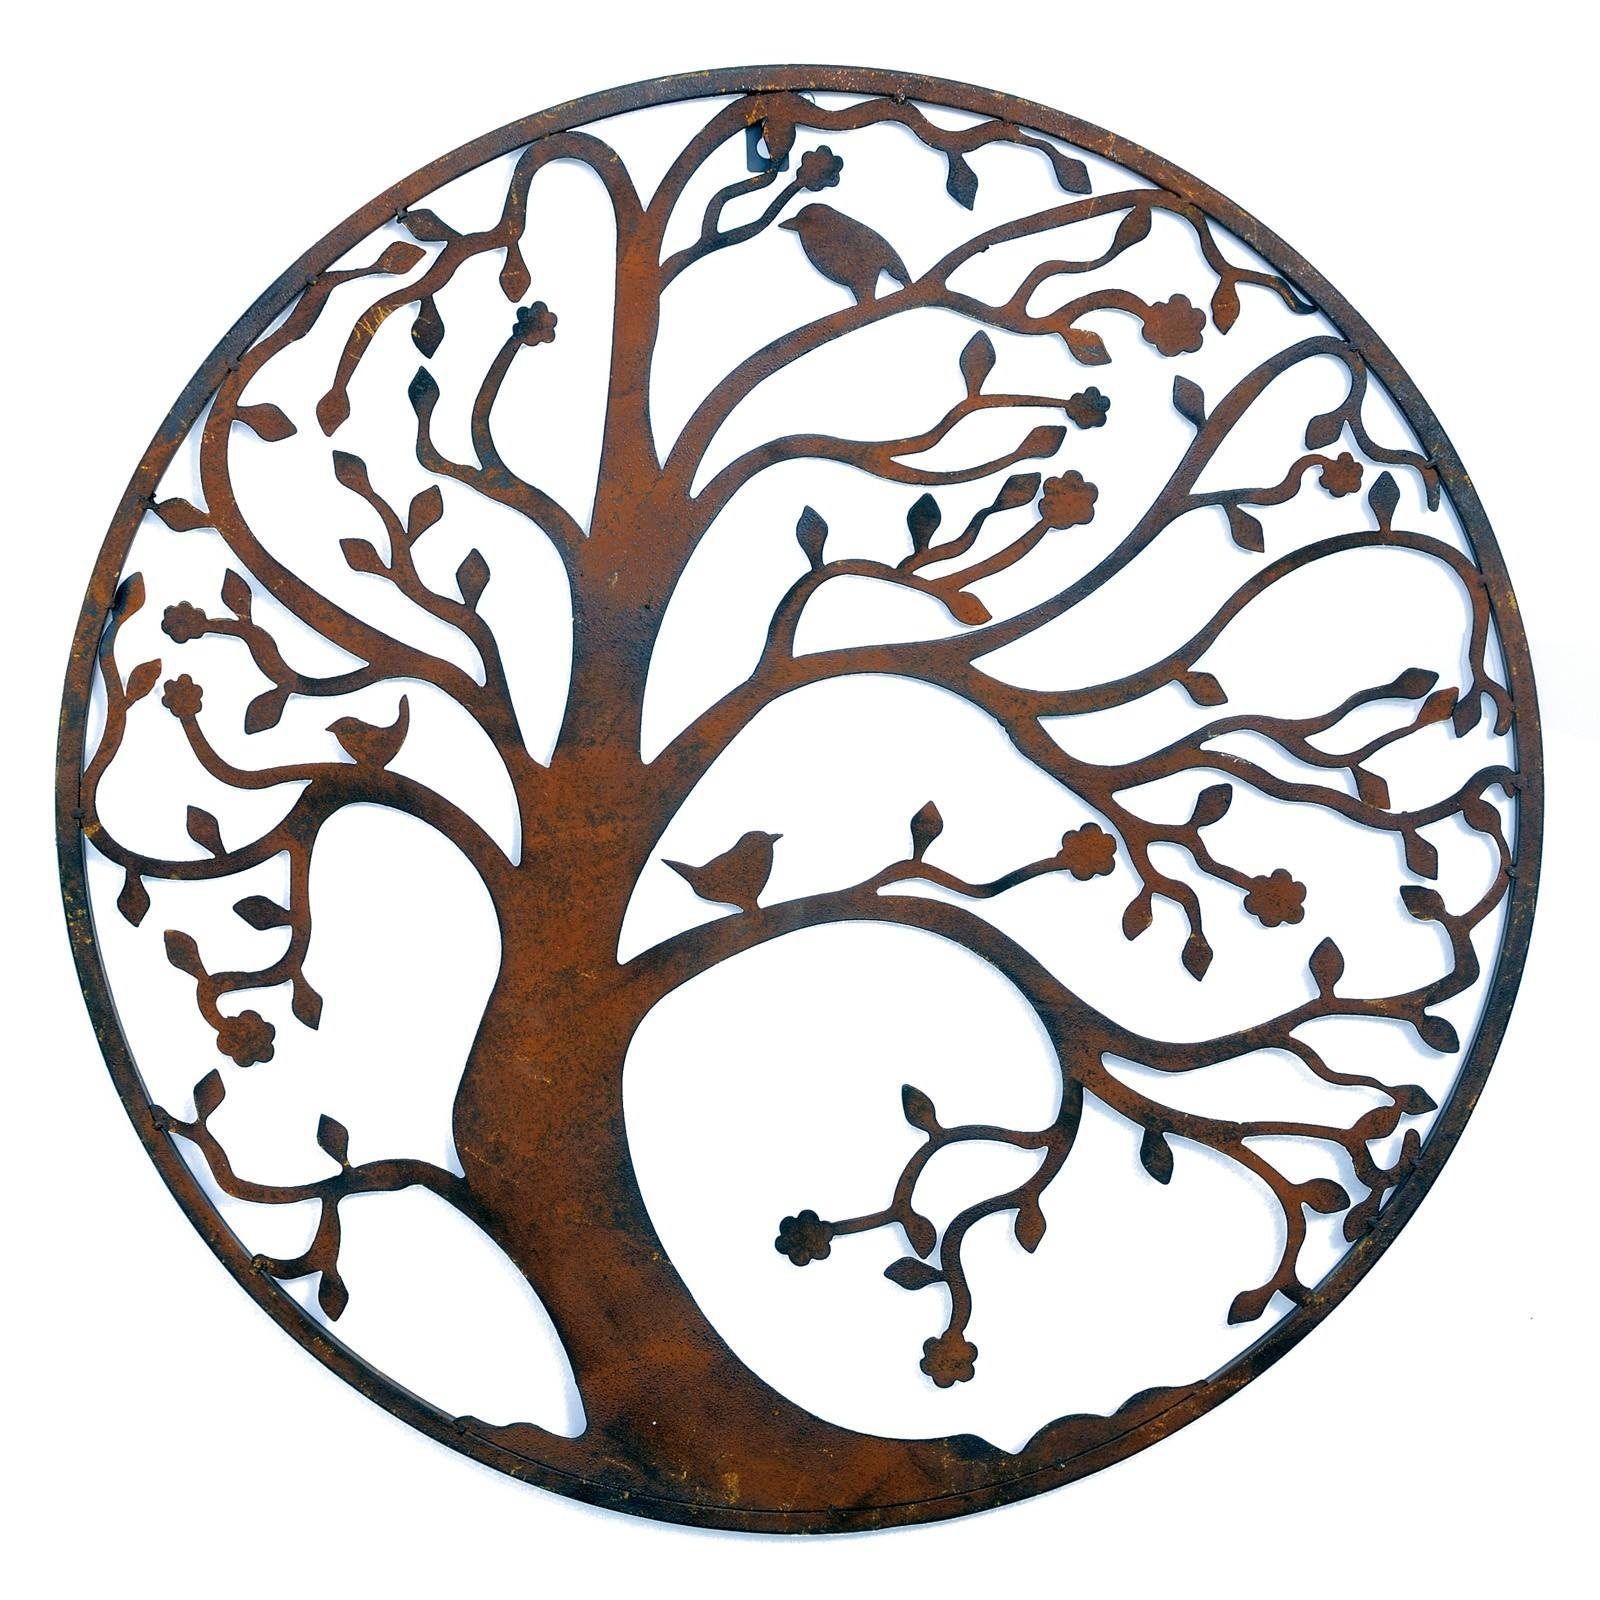 Wall Art Designs: Rusted Classic Design Tree Leaf Branch Birds With Best And Newest Metal Wall Art Trees And Leaves (View 19 of 20)